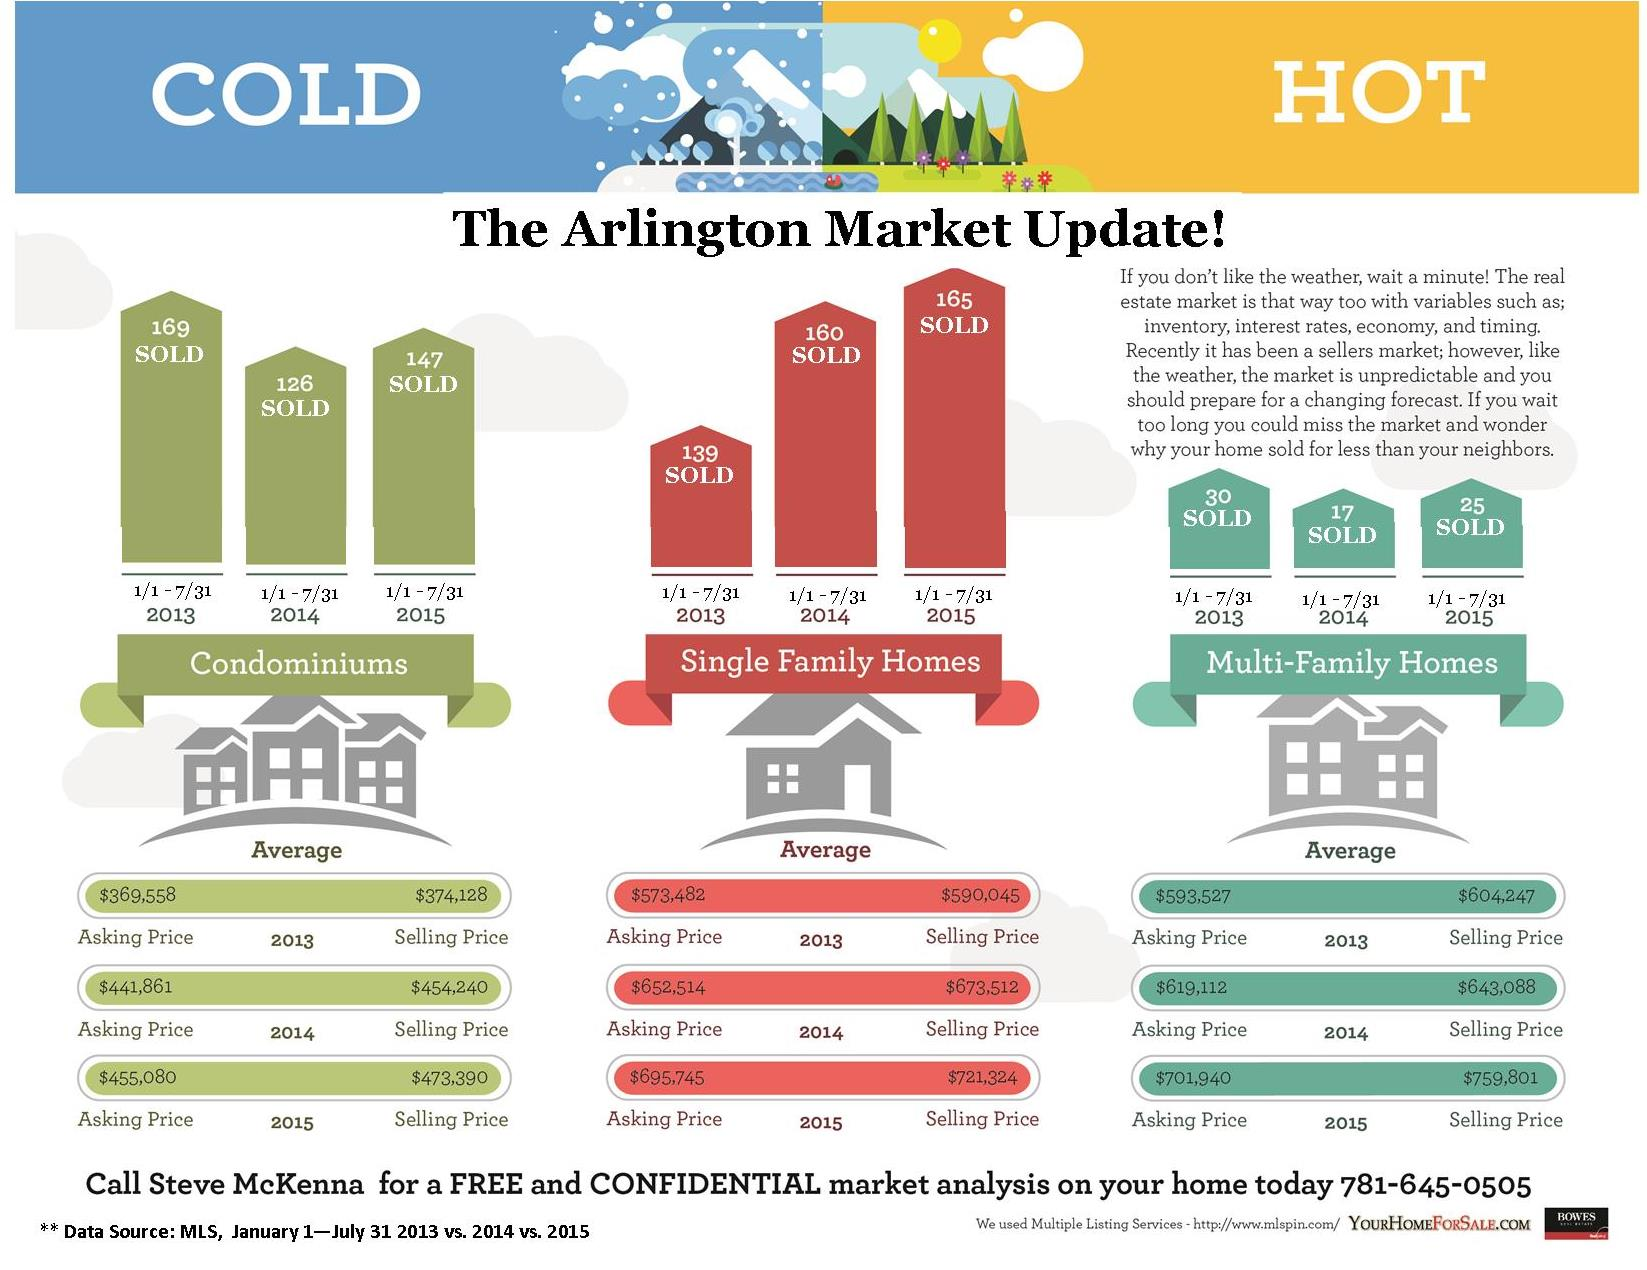 Arlington MA Real Estate Market Update